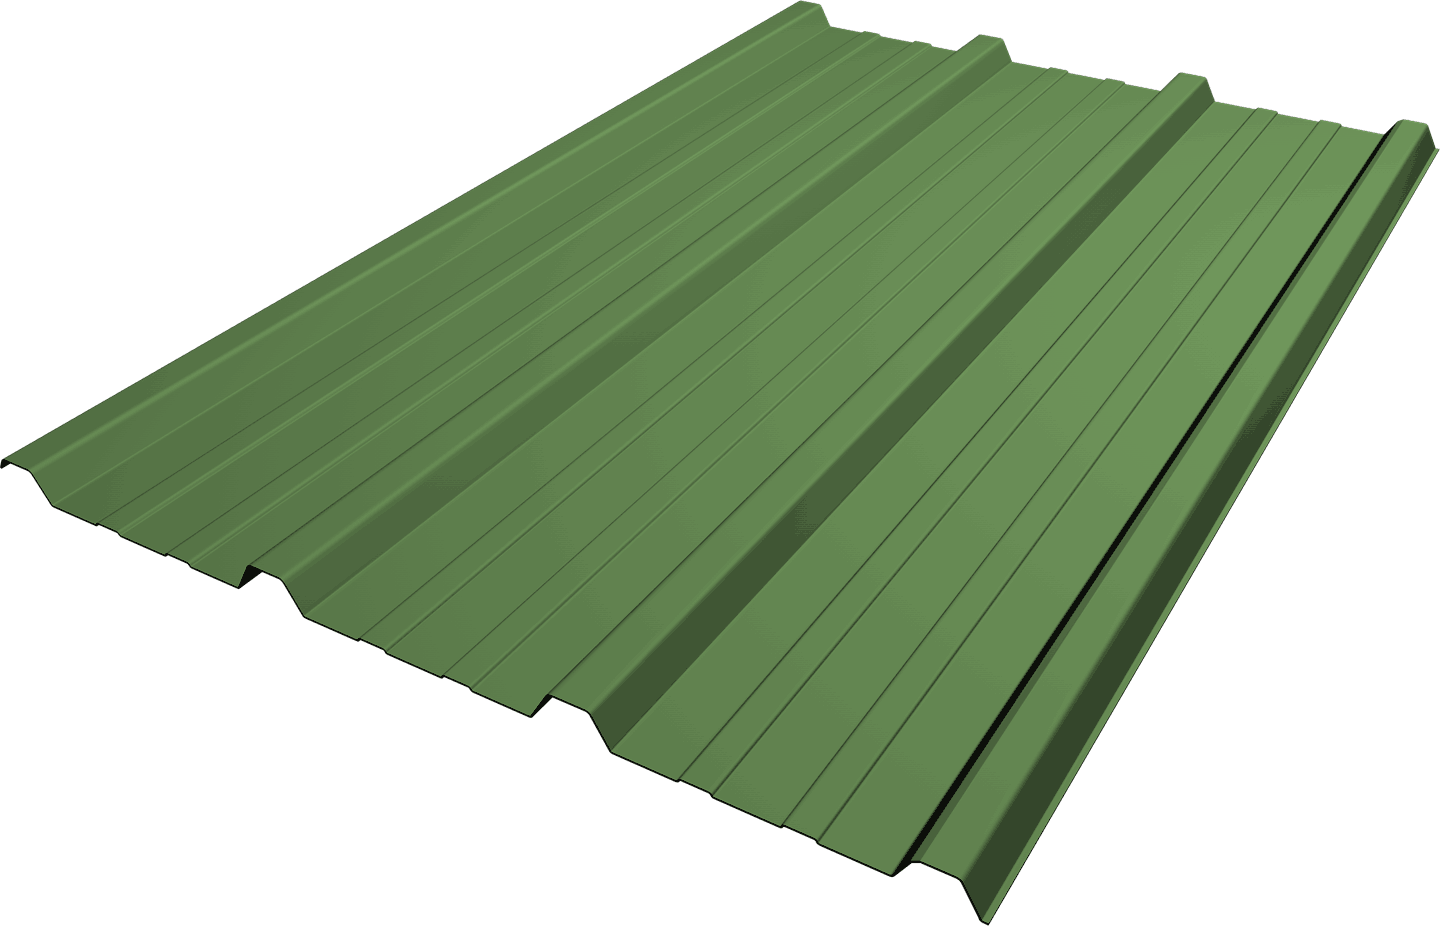 Flexrib Roofing and Siding Panel